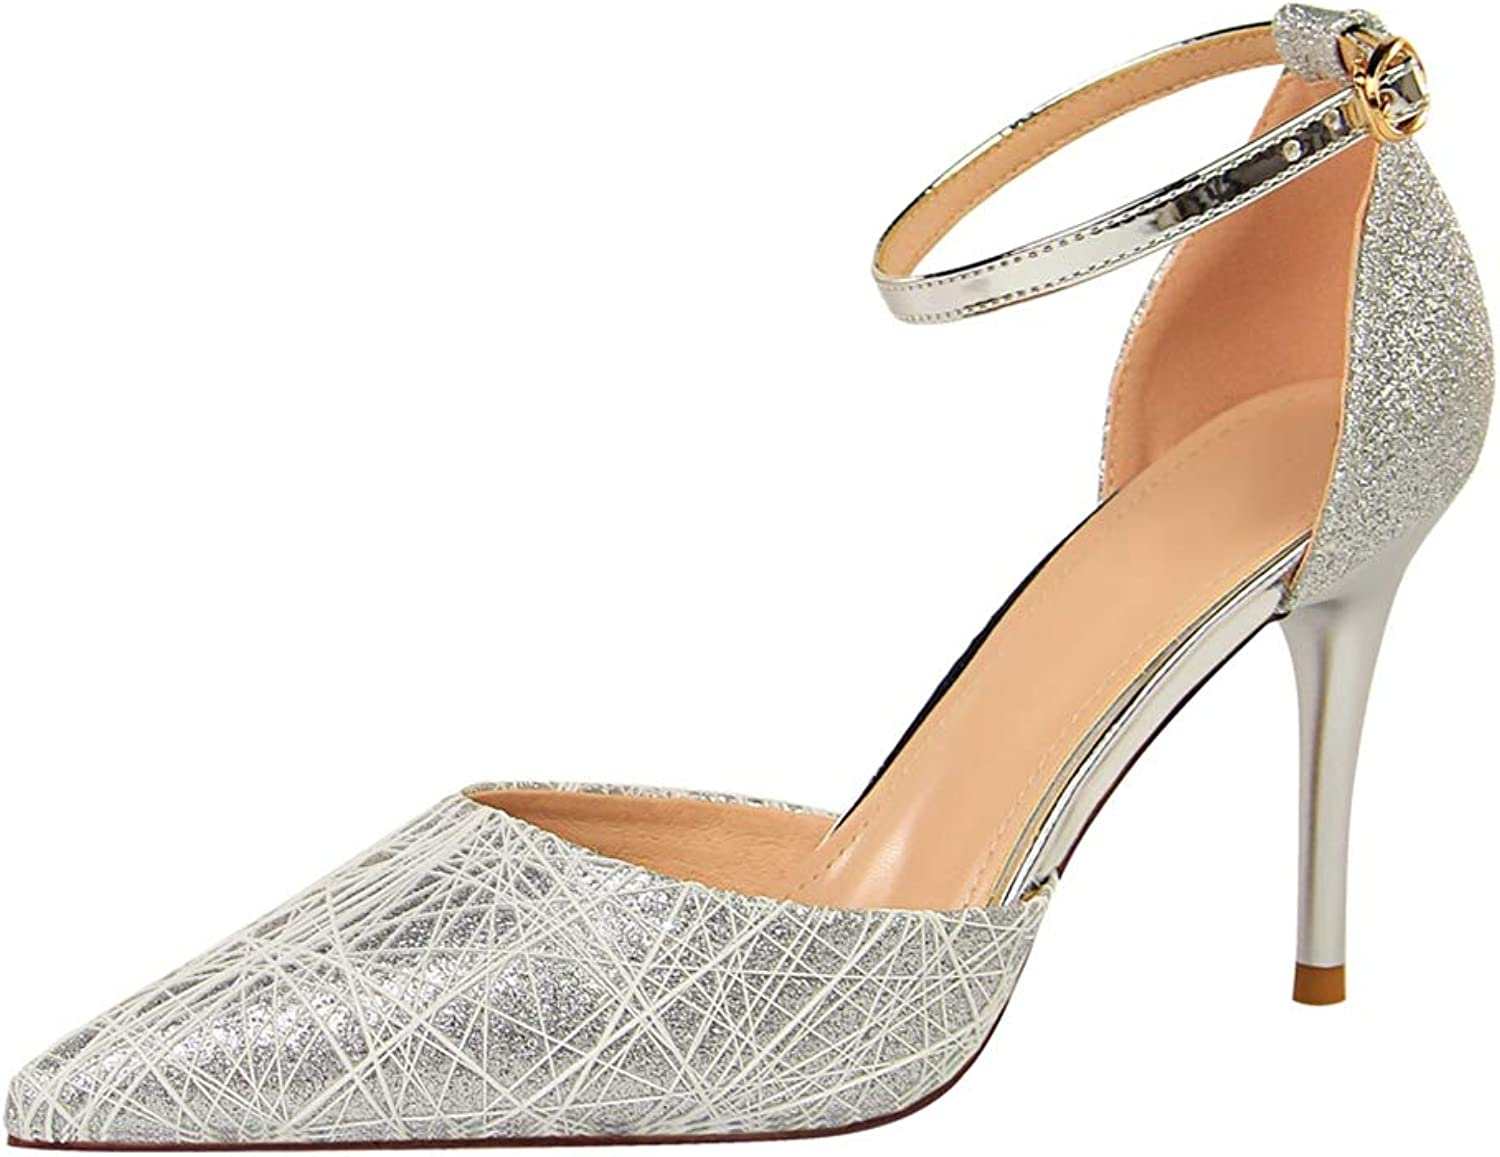 Drew Toby Women Pumps Fashion Sequin Shallow Pointed-Toe Ankle Strap Elegant High Heels